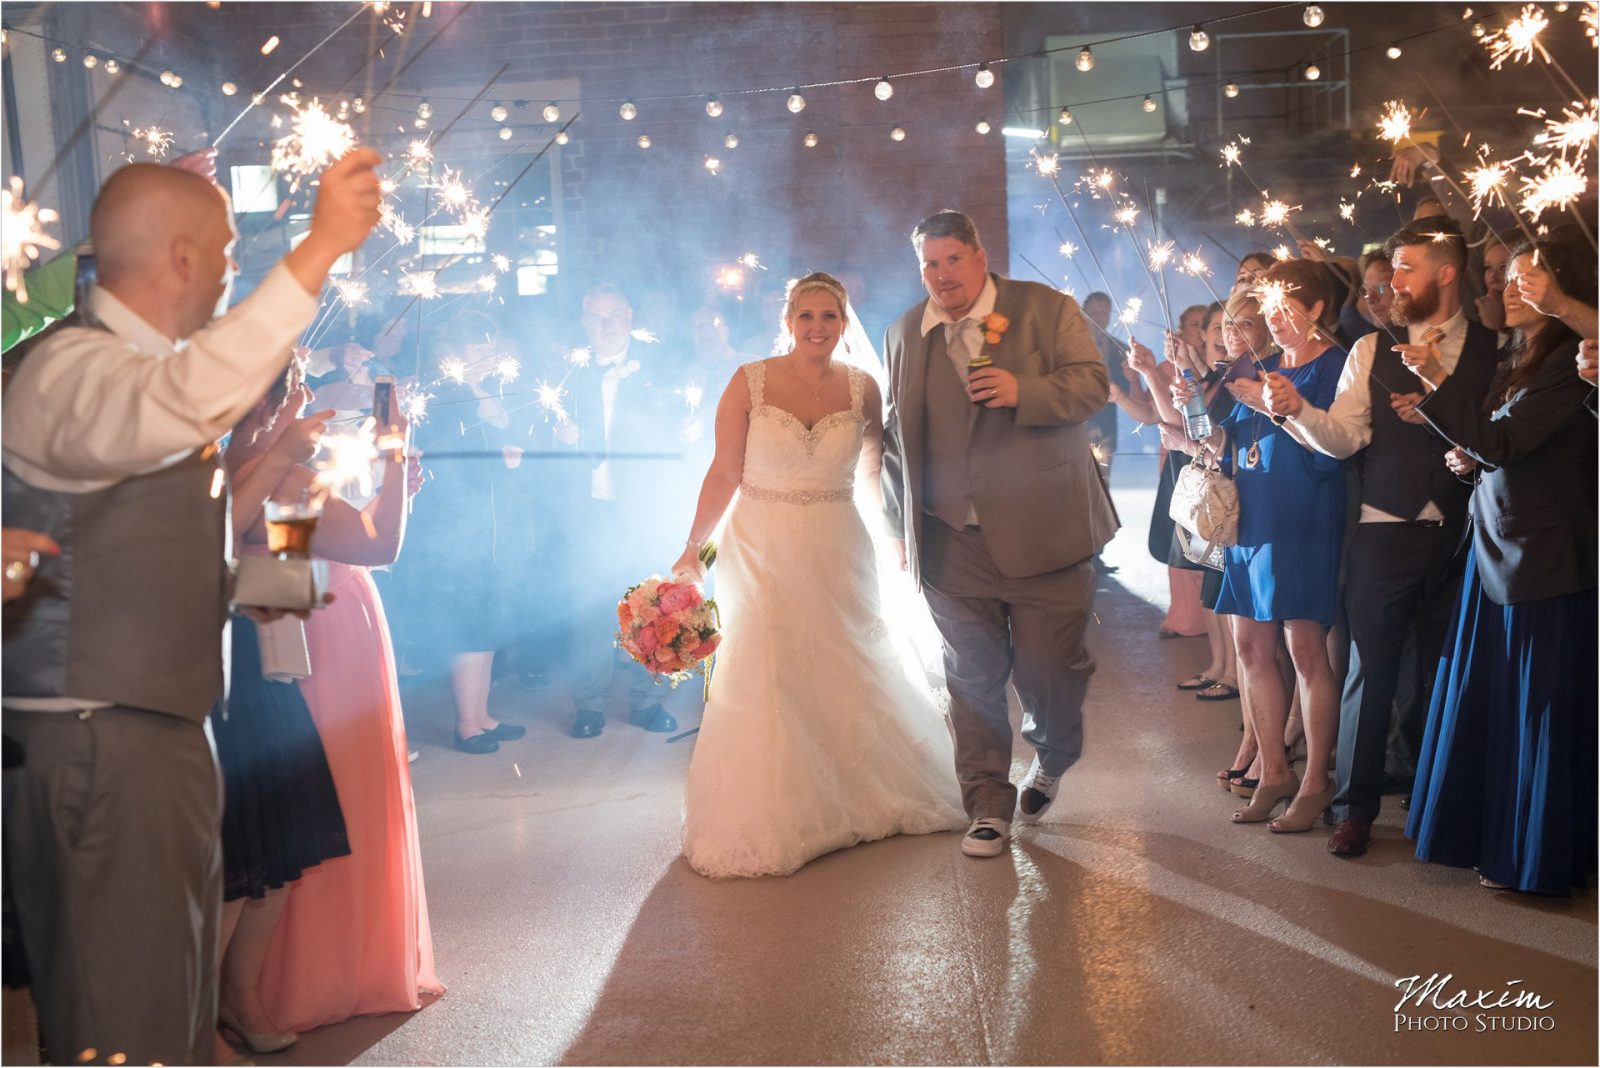 Top of the Market Dayton Ohio Wedding Reception sparkler exit